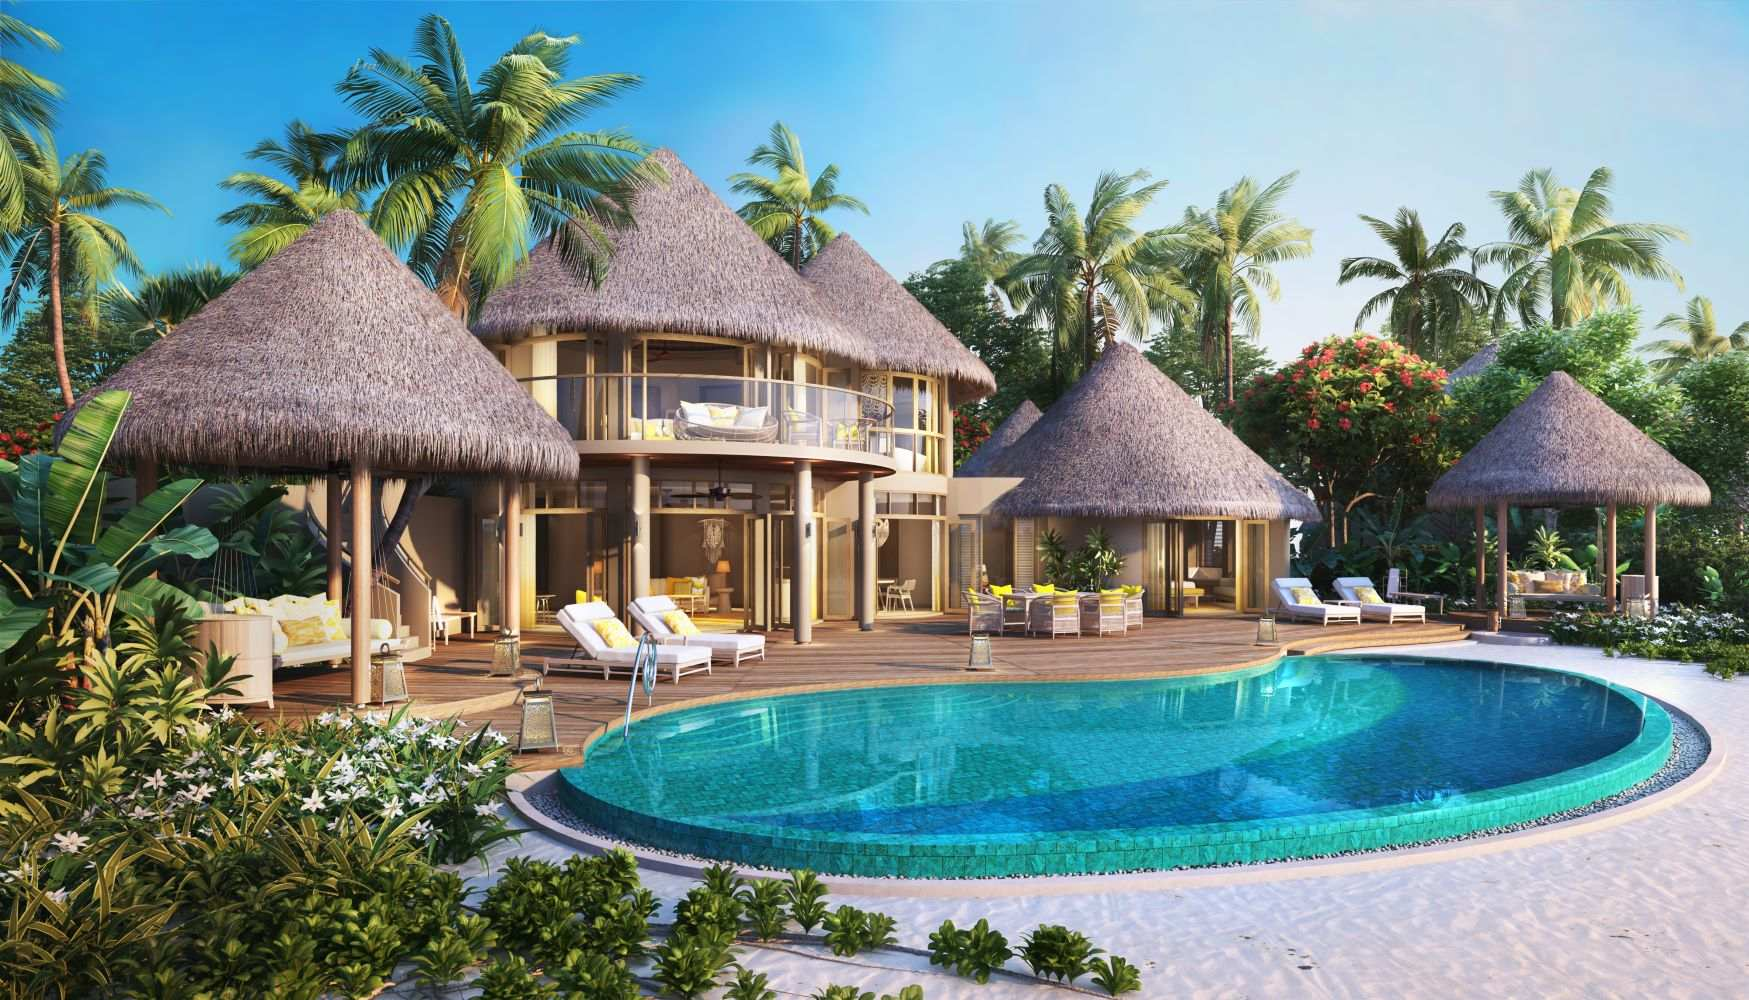 The Nautilus Maldives, Two Bedroom Beach Residence